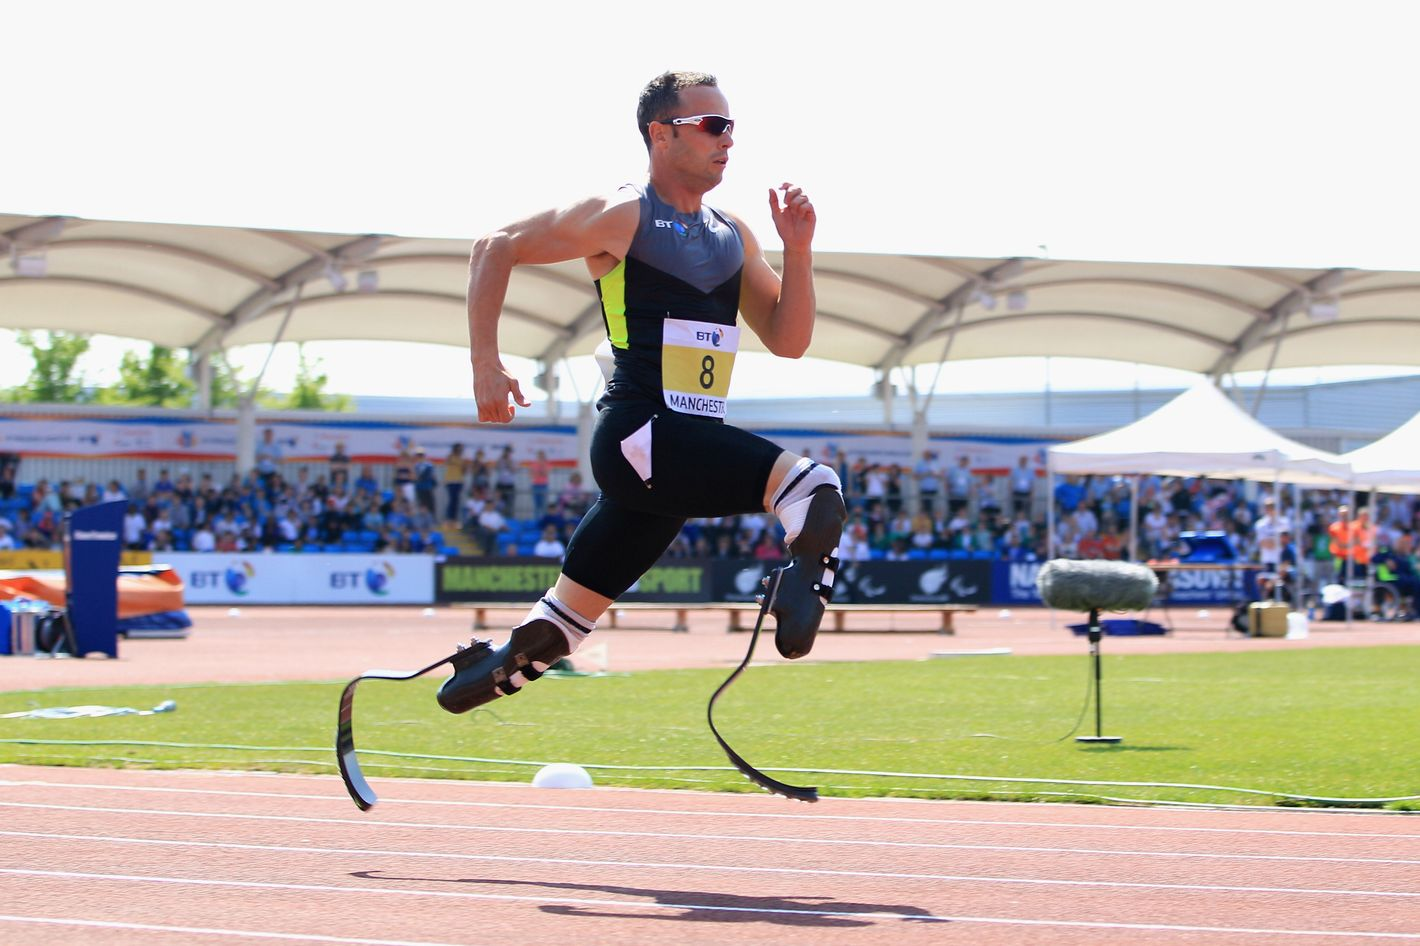 Oscar Pistorius of South Africa on his way to victory in the men's T42/43/44 200m during day one of the BT Paralympic World Cup at Sportcity on May 22, 2012 in Manchester, England.